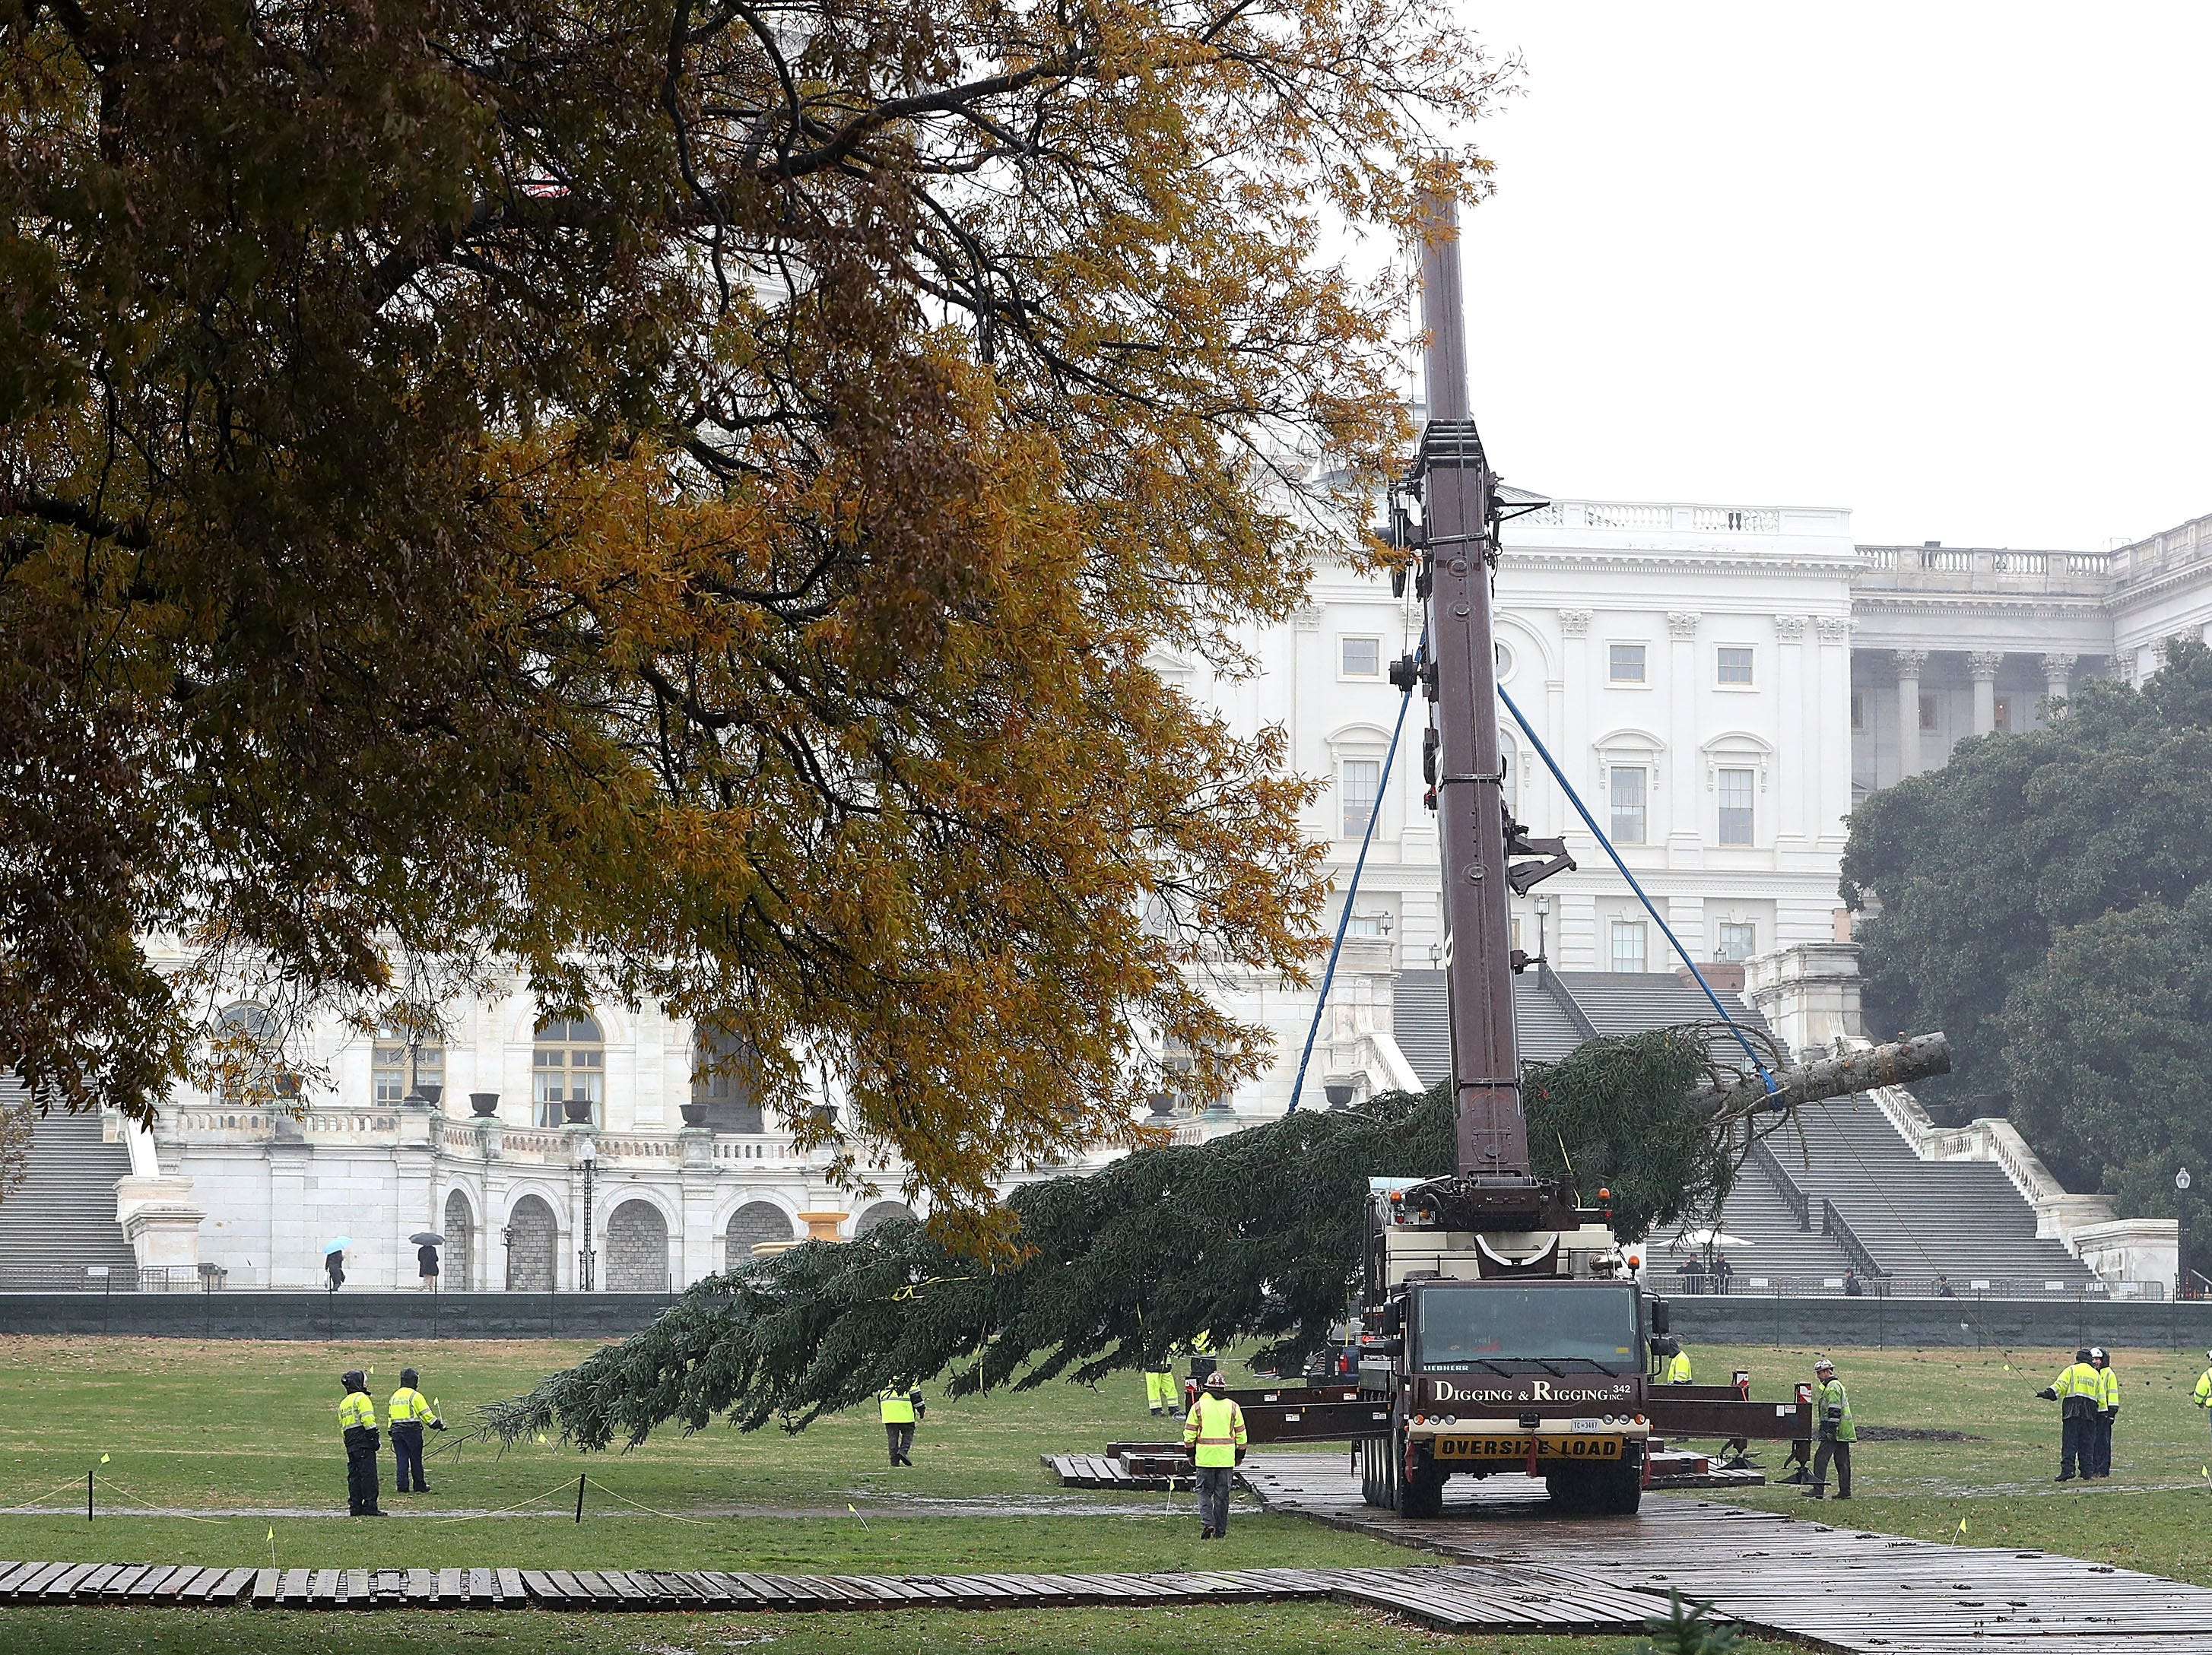 WASHINGTON, DC - NOVEMBER 26:  A large crane moves the U.S. Capitol Christmas Tree into place on the west front of the U.S. Capitol, on November 26, 2018 in Washington, DC. The 80-foot tall Noble Fir is from Oregon's Willamette National Forest.